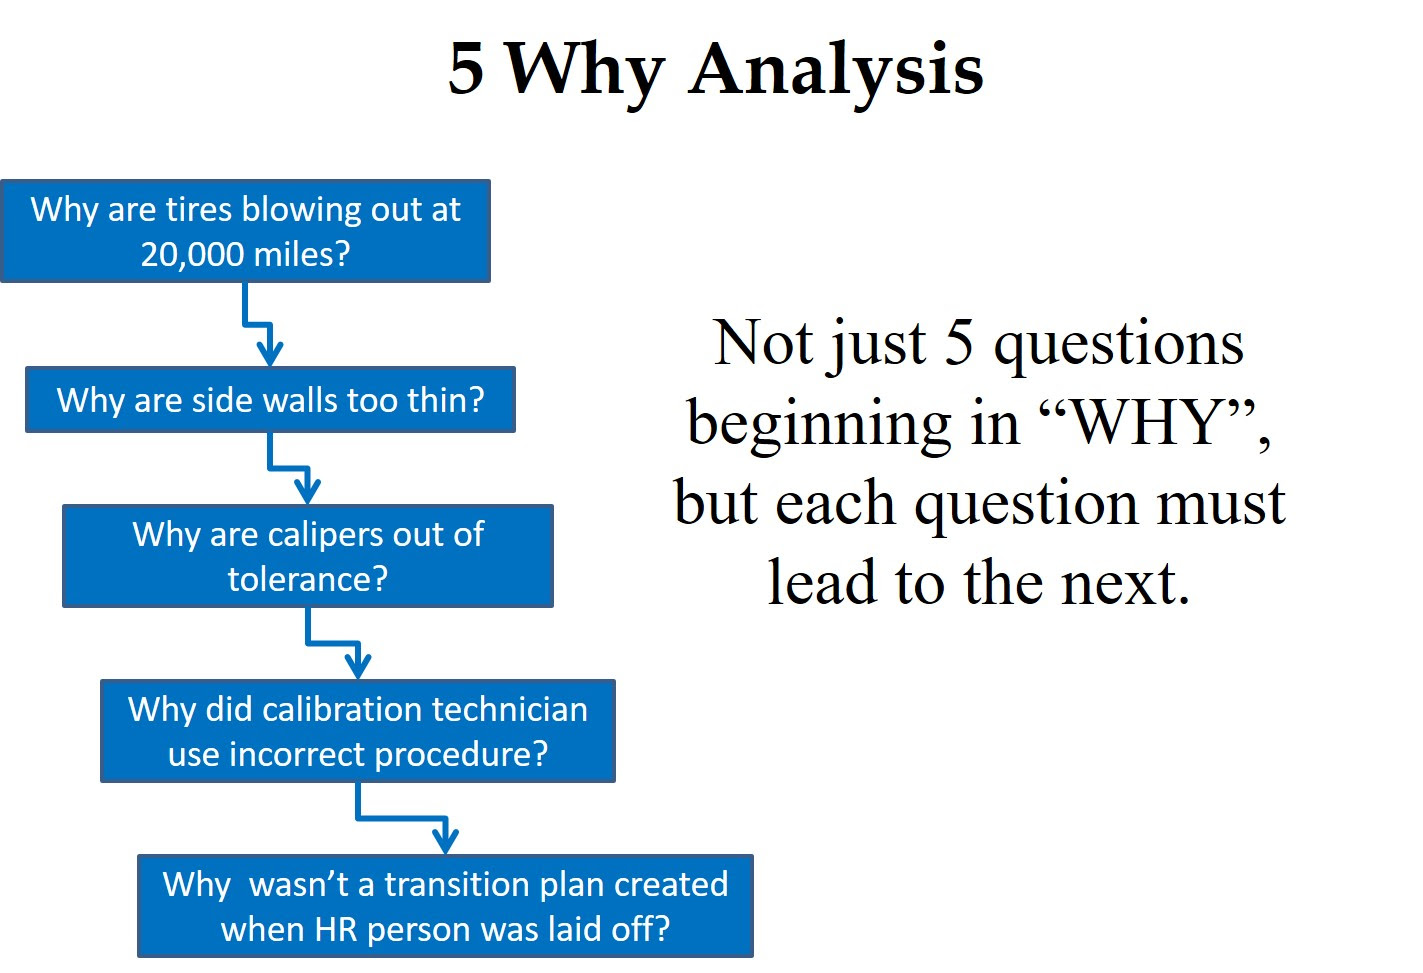 5 why analysis for root cause analysis